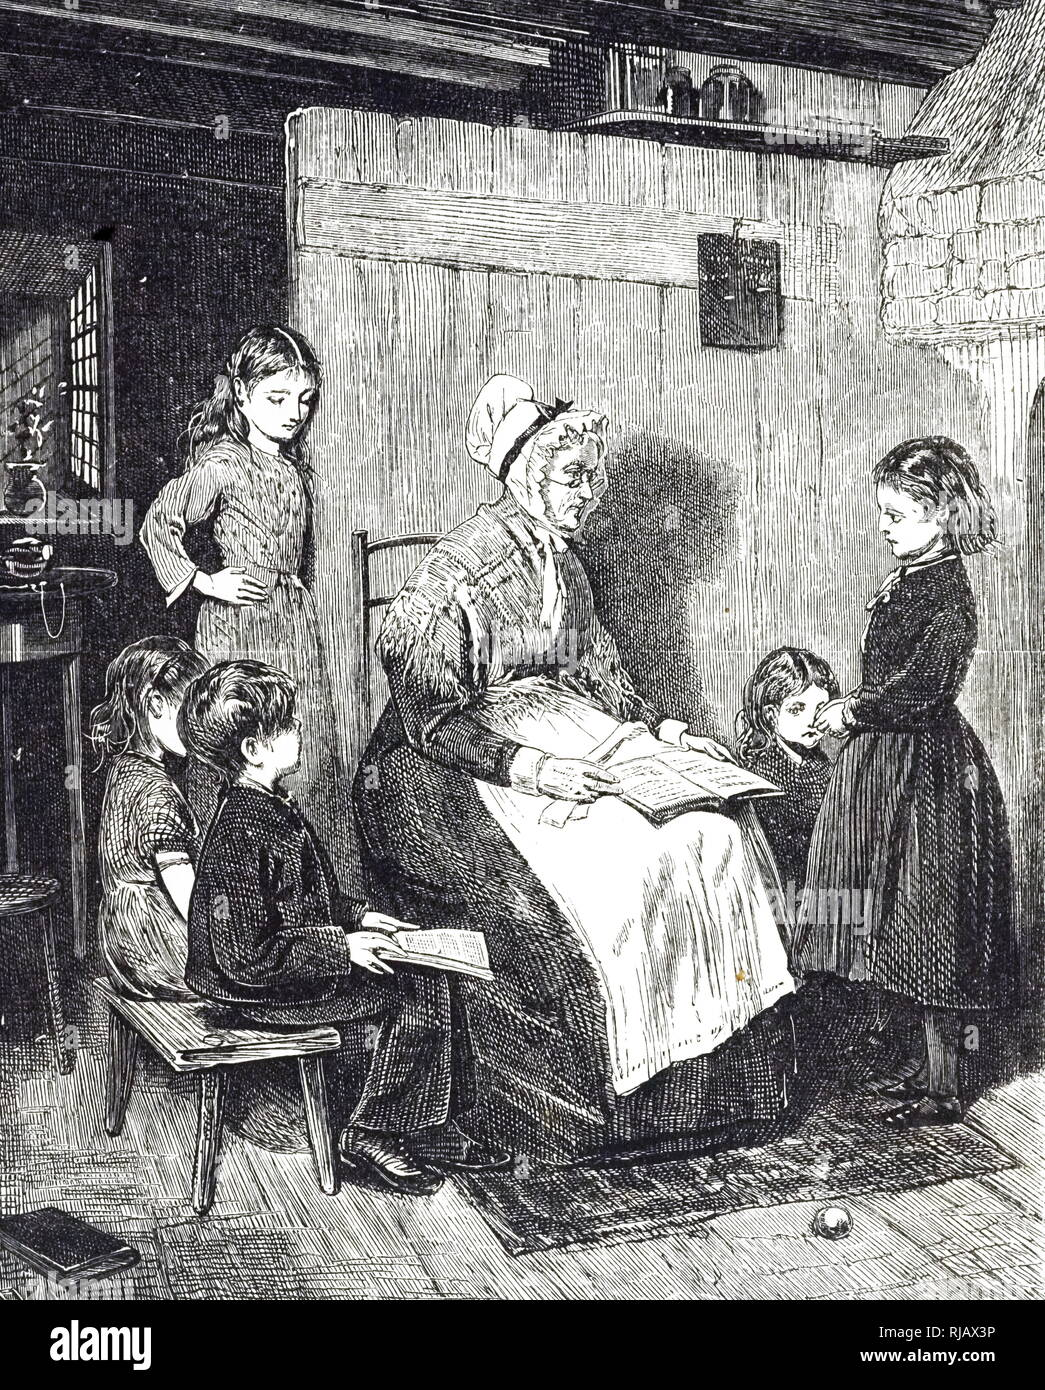 An engraving depicting a 'dame school' in England. These schools were run for working-class children and were often of an inferior educational standard. Dated 19th century - Stock Image